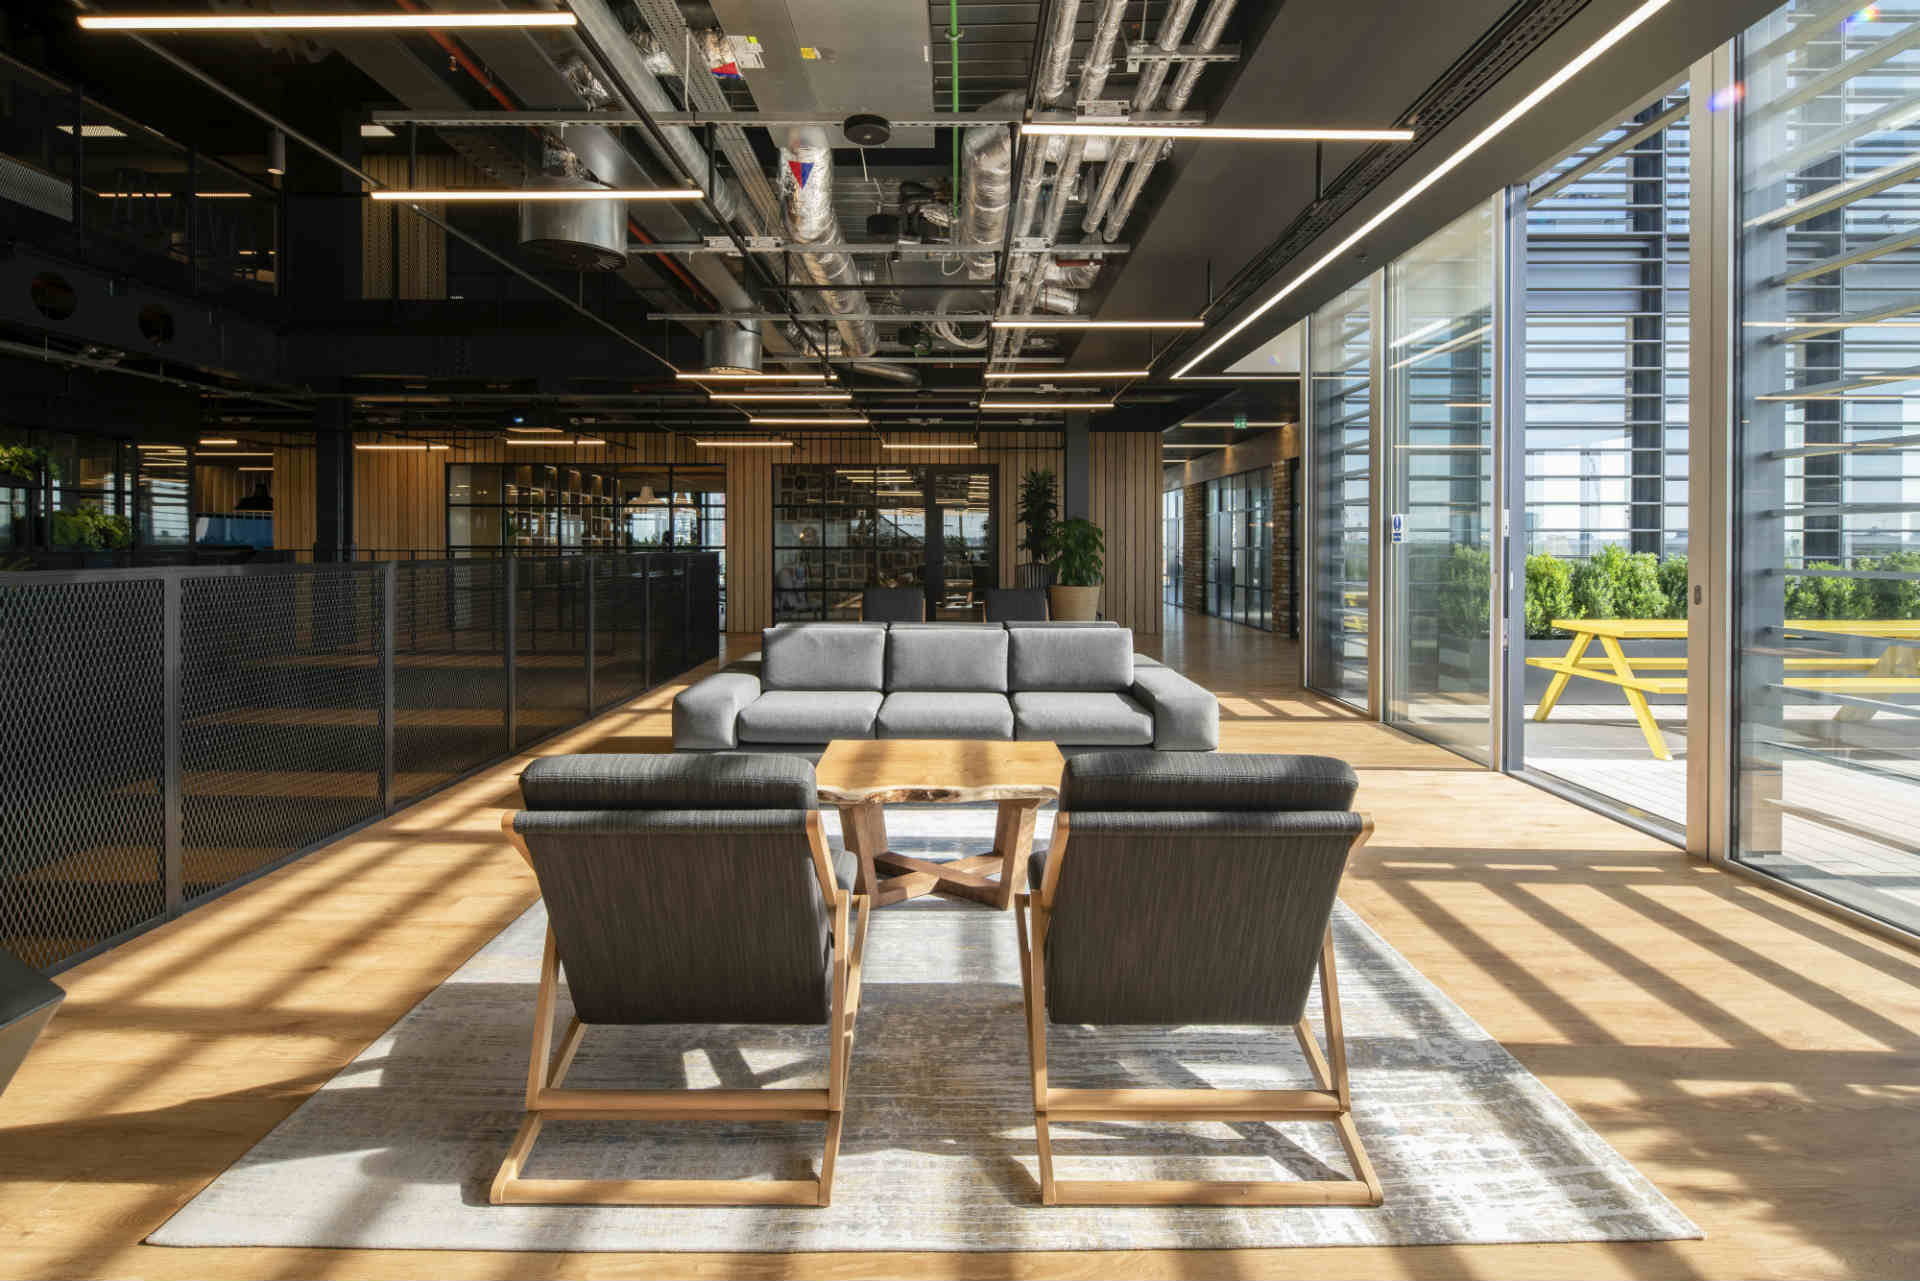 Timber furniture connects us with nature, fostering our wellbeing in the workplace. Forest & Maker explains why tiimber furniture is a sound investment